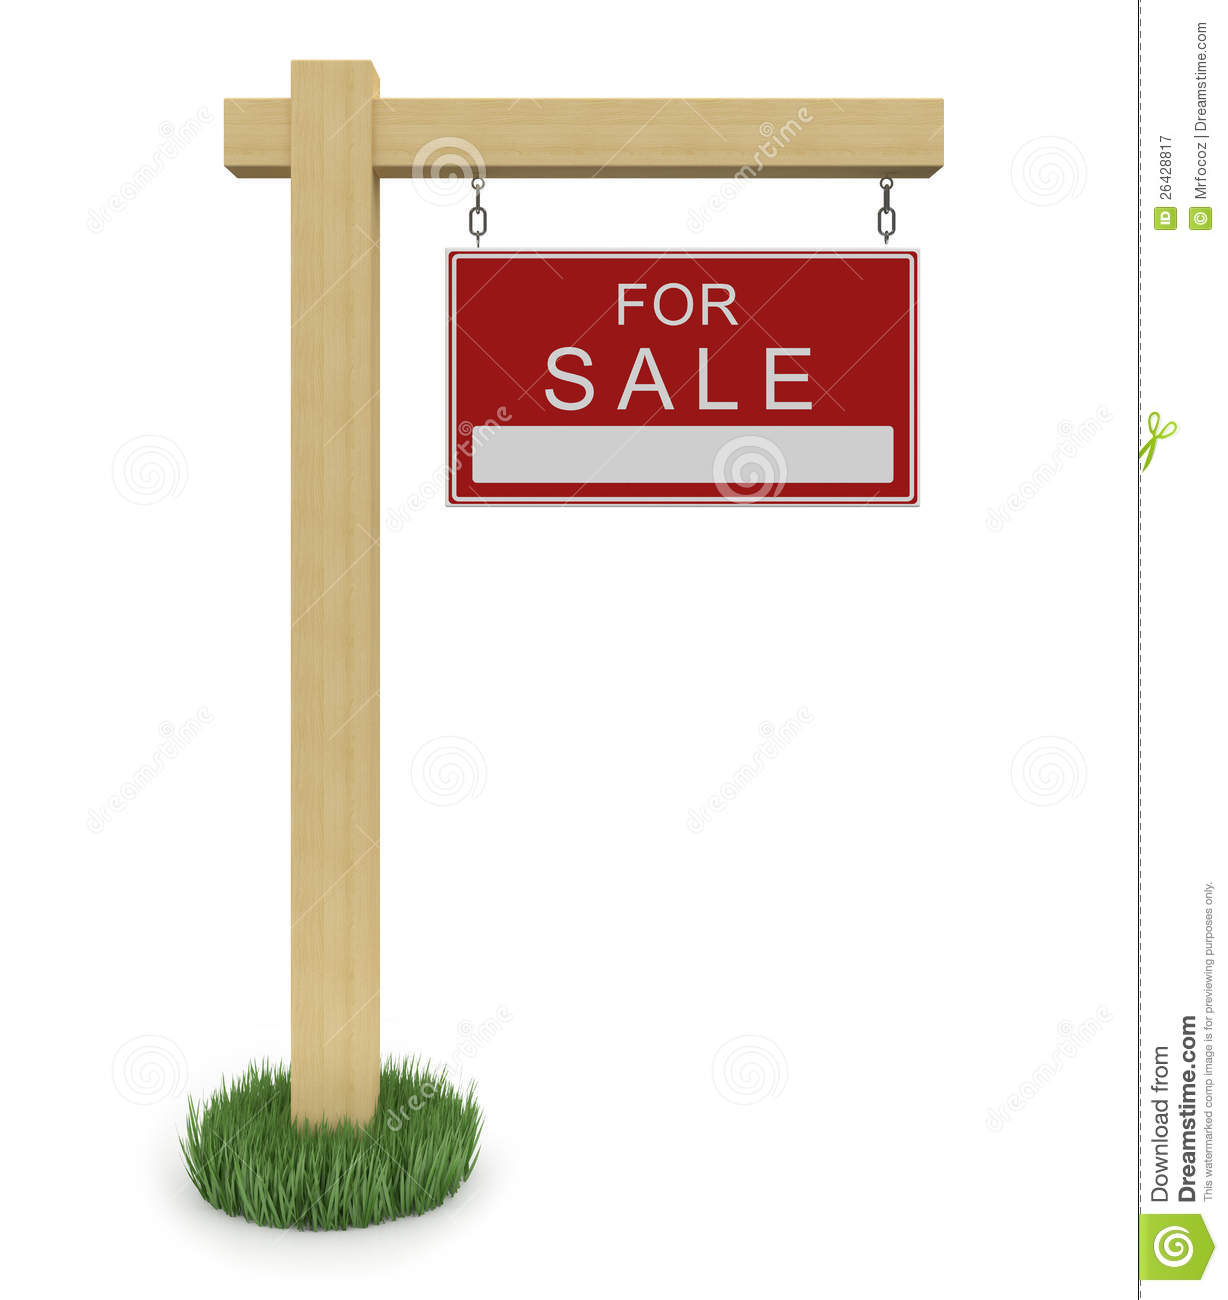 For sale sign with path stock illustration illustration for Photography pictures for sale